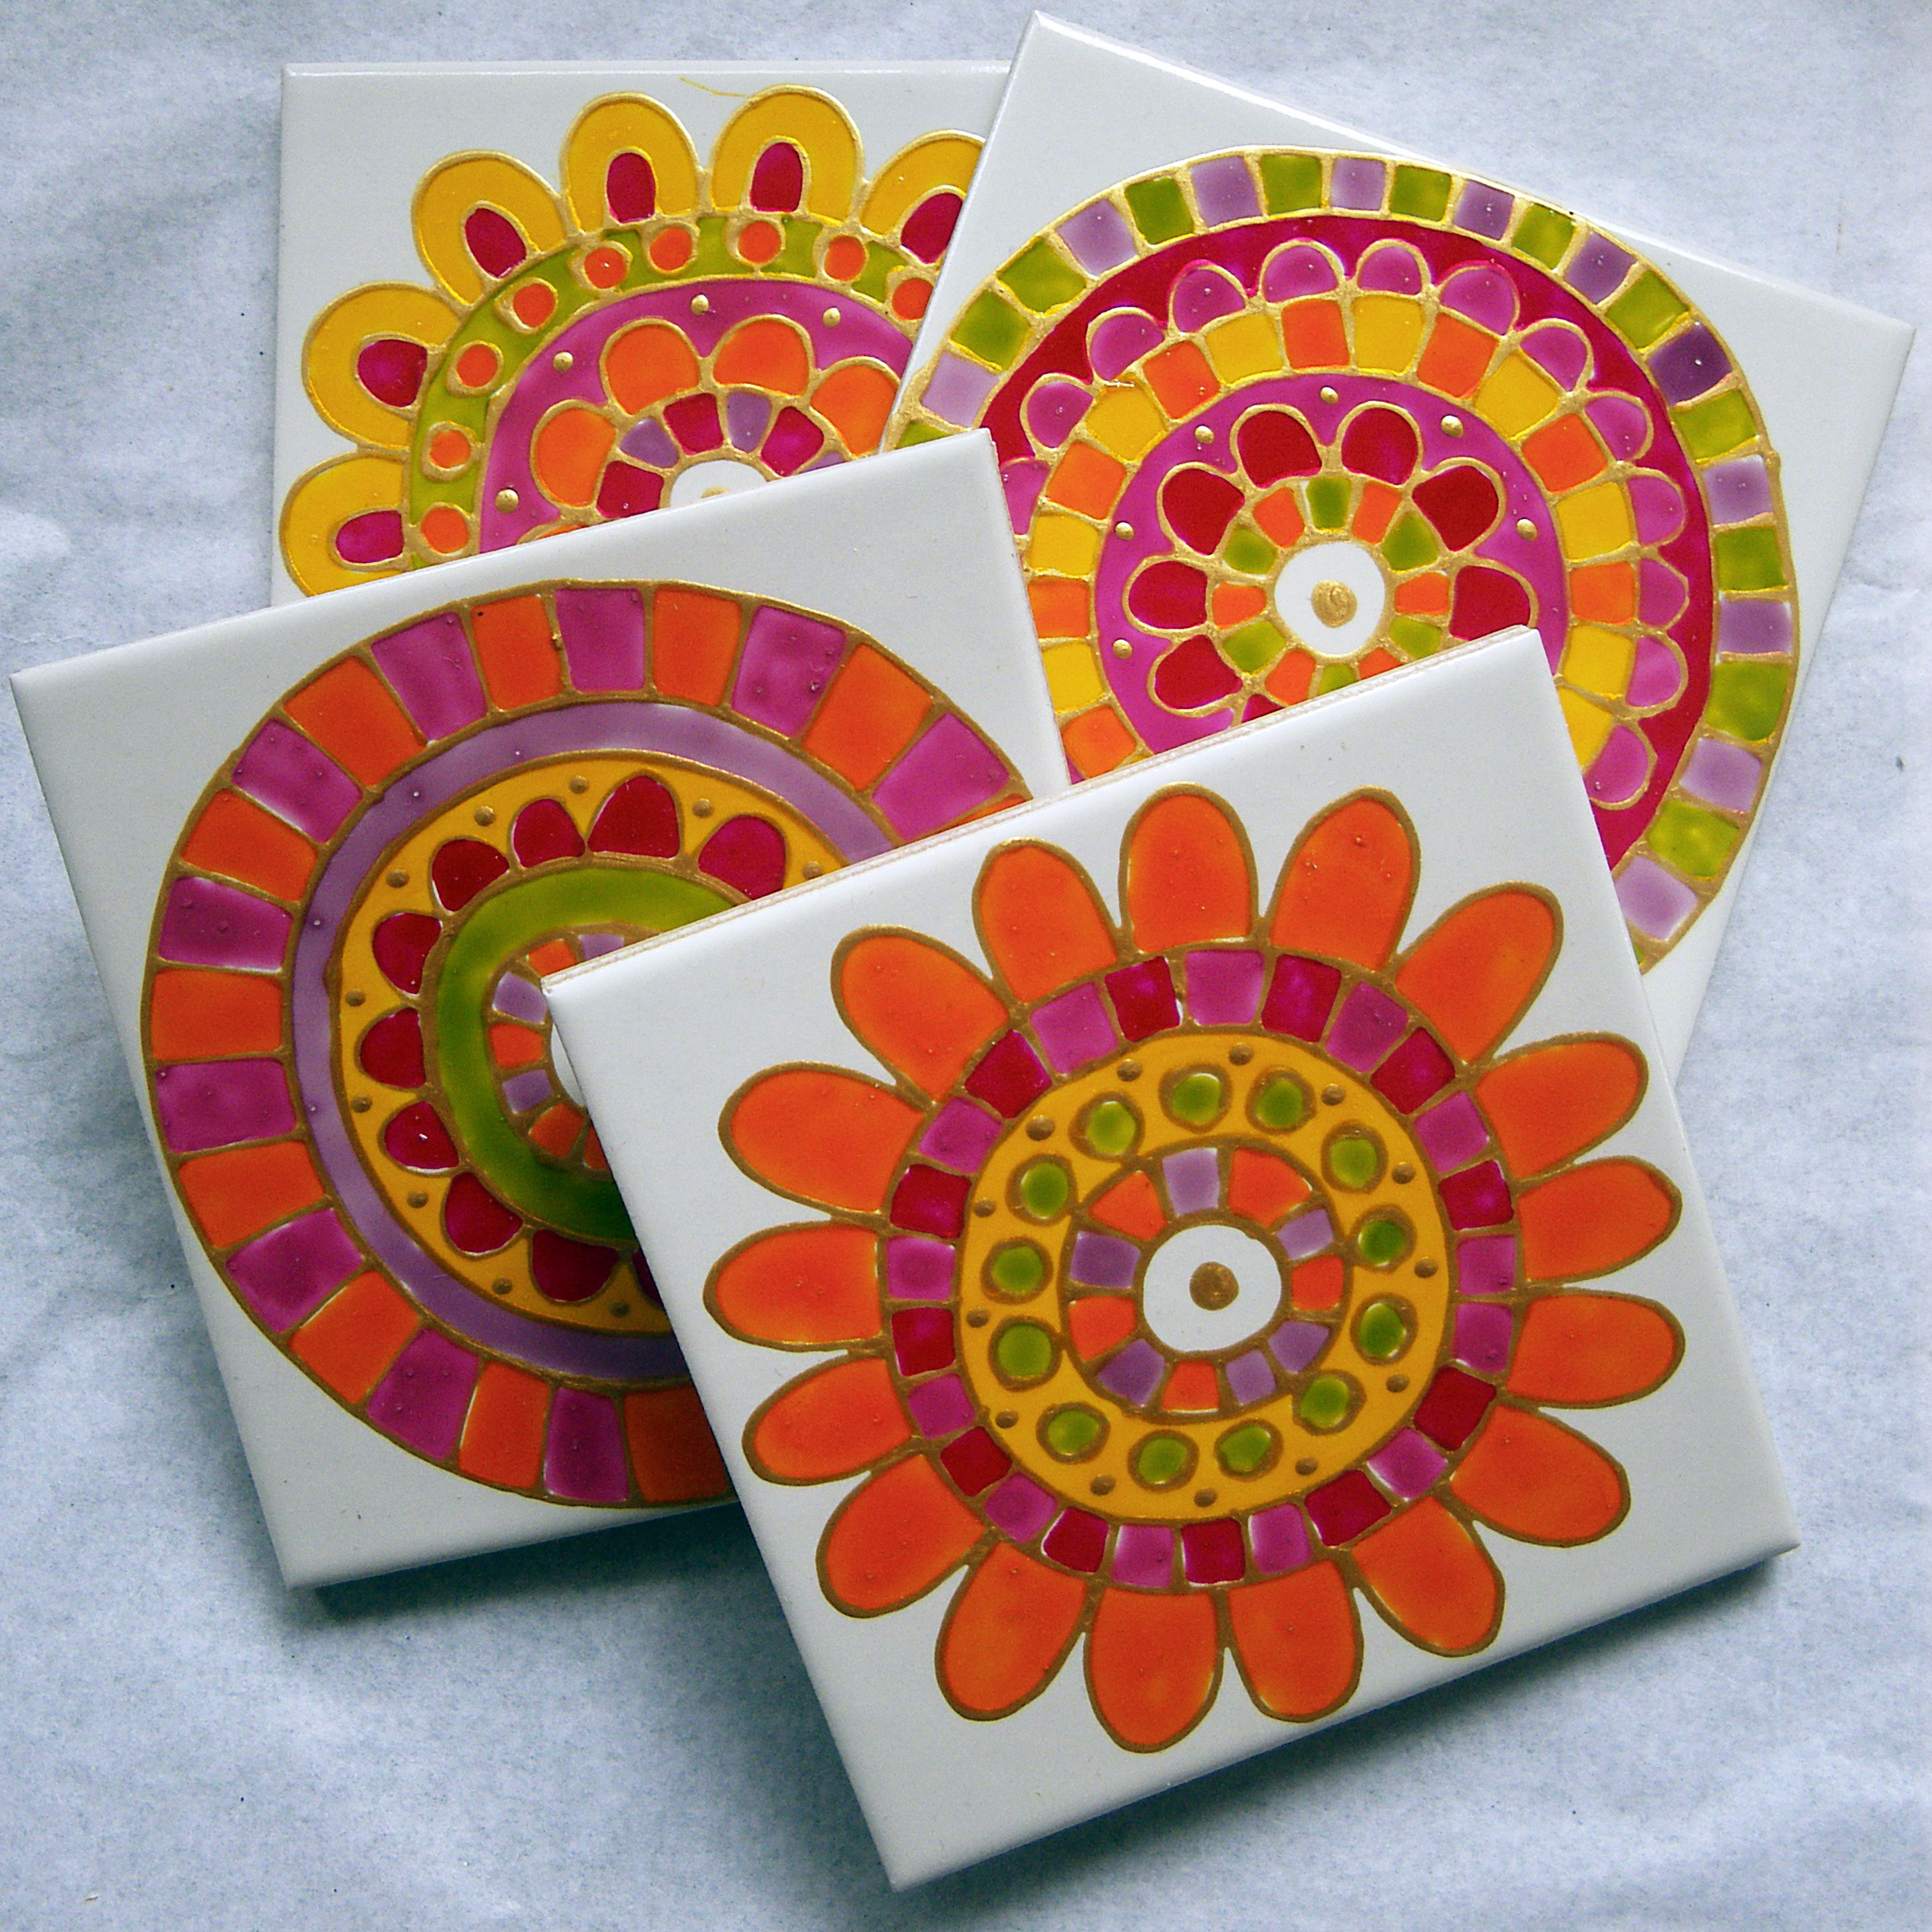 Decorative Tile Coasters Cool Hand Painted Ceramic Tile Coasters Wwwjocelynproustdesignsau Review